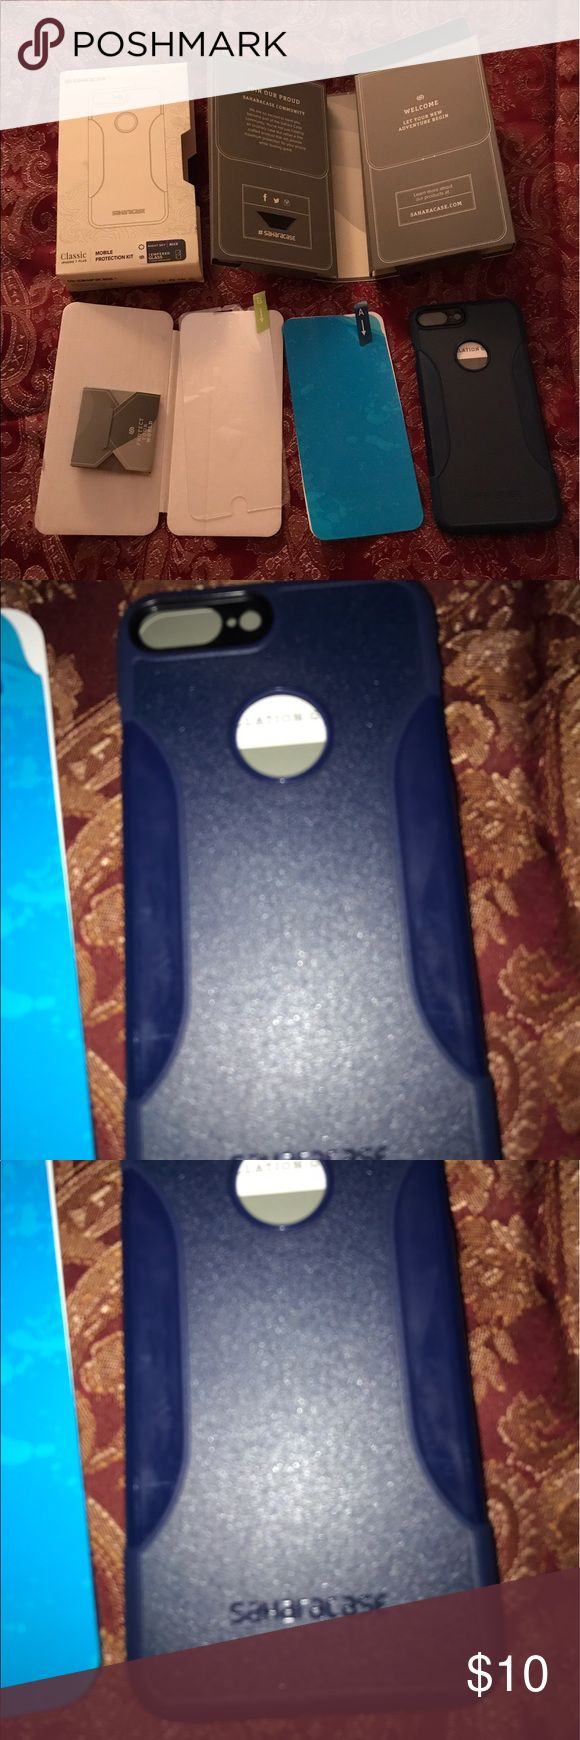 iPhone 7 plus case navy Sahara case protective kit iPhone 7 plus case...navy color....Sahara Case protective kit bundle with premium finish slim fit (shockproof bumper)....I bought this as a mistake....you will see it was opened and now I can't return it.....retails for $22! saharacase Accessories Phone Cases